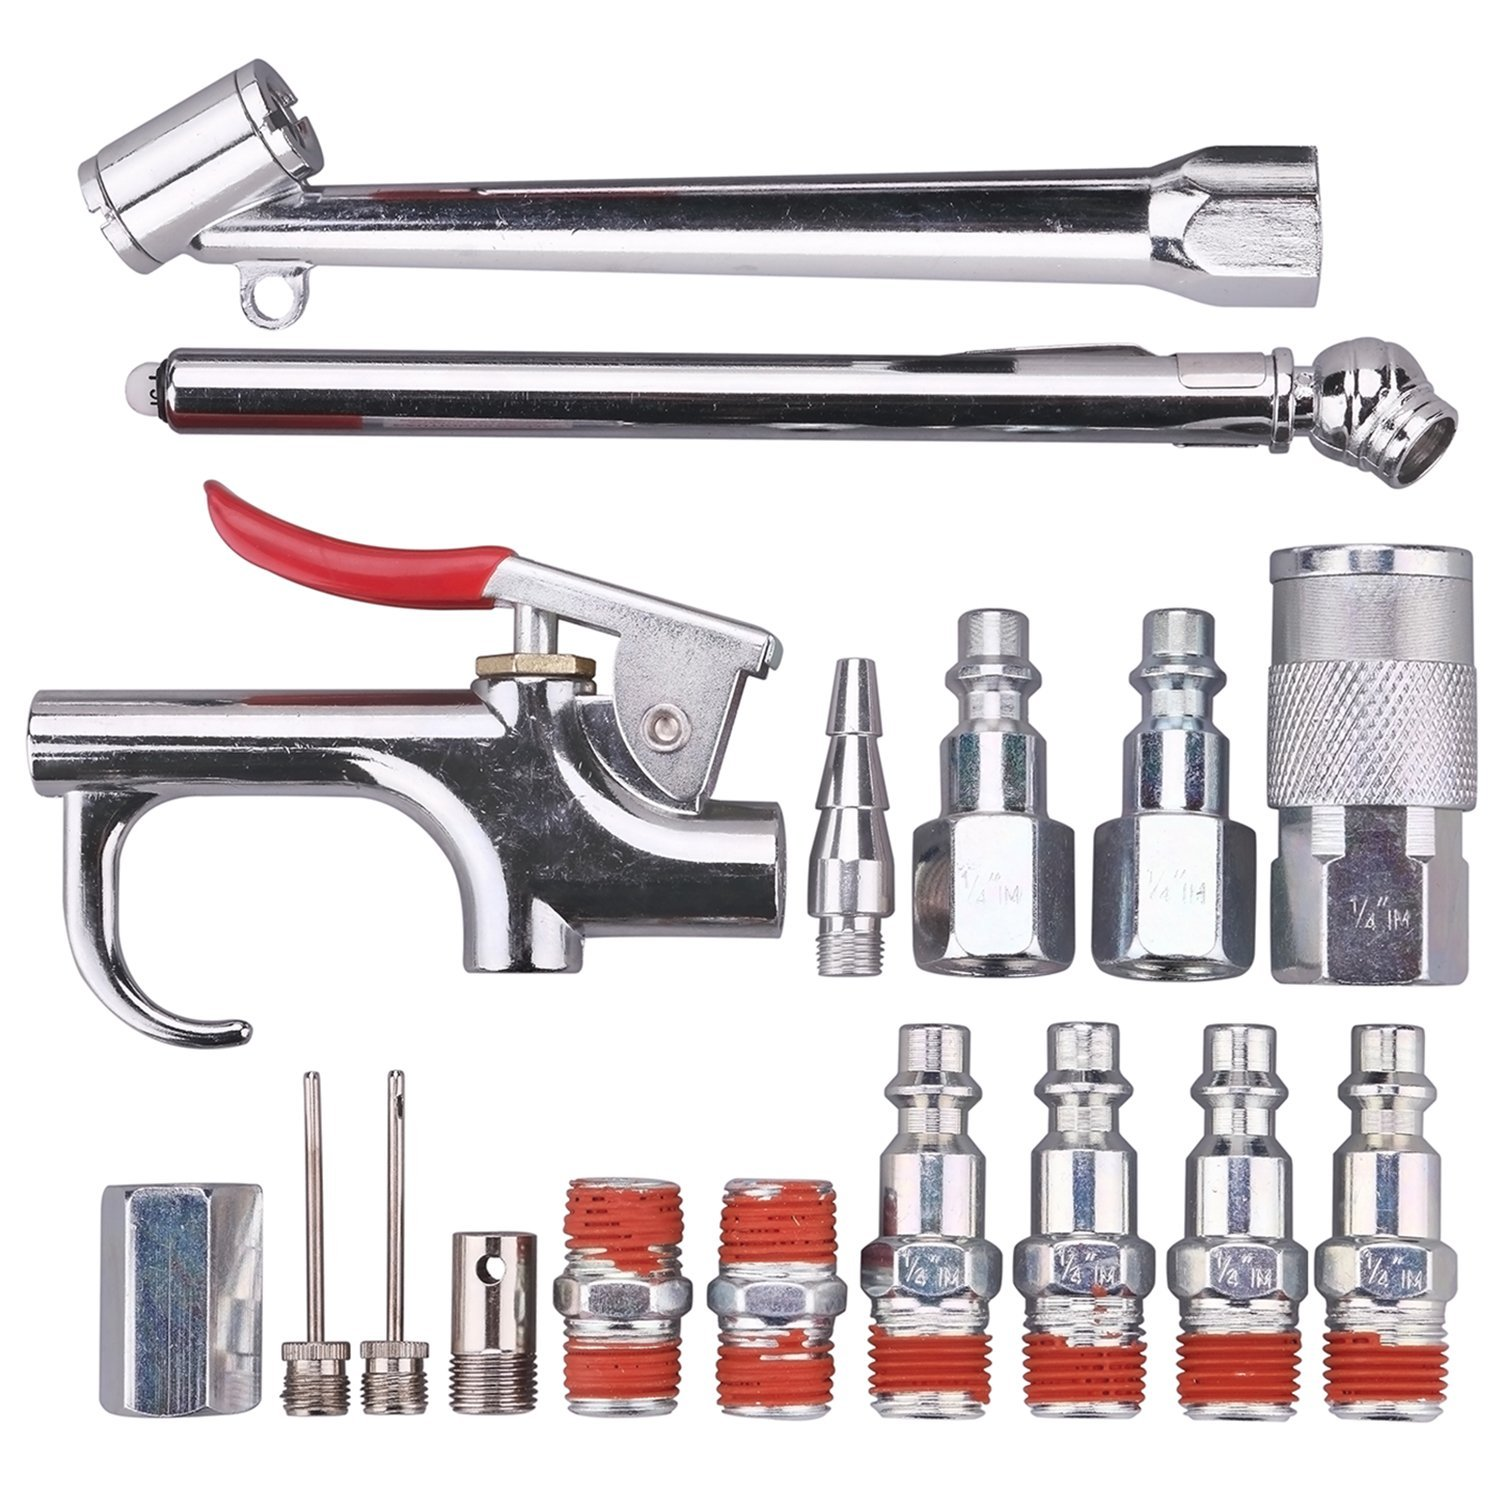 "WYNNsky Air Tool And Accessory Kit, 1/4"" NPT 17 Piece Air Compressor Accessories w/Blow Gun/ Tire Gauge/Storage Case"